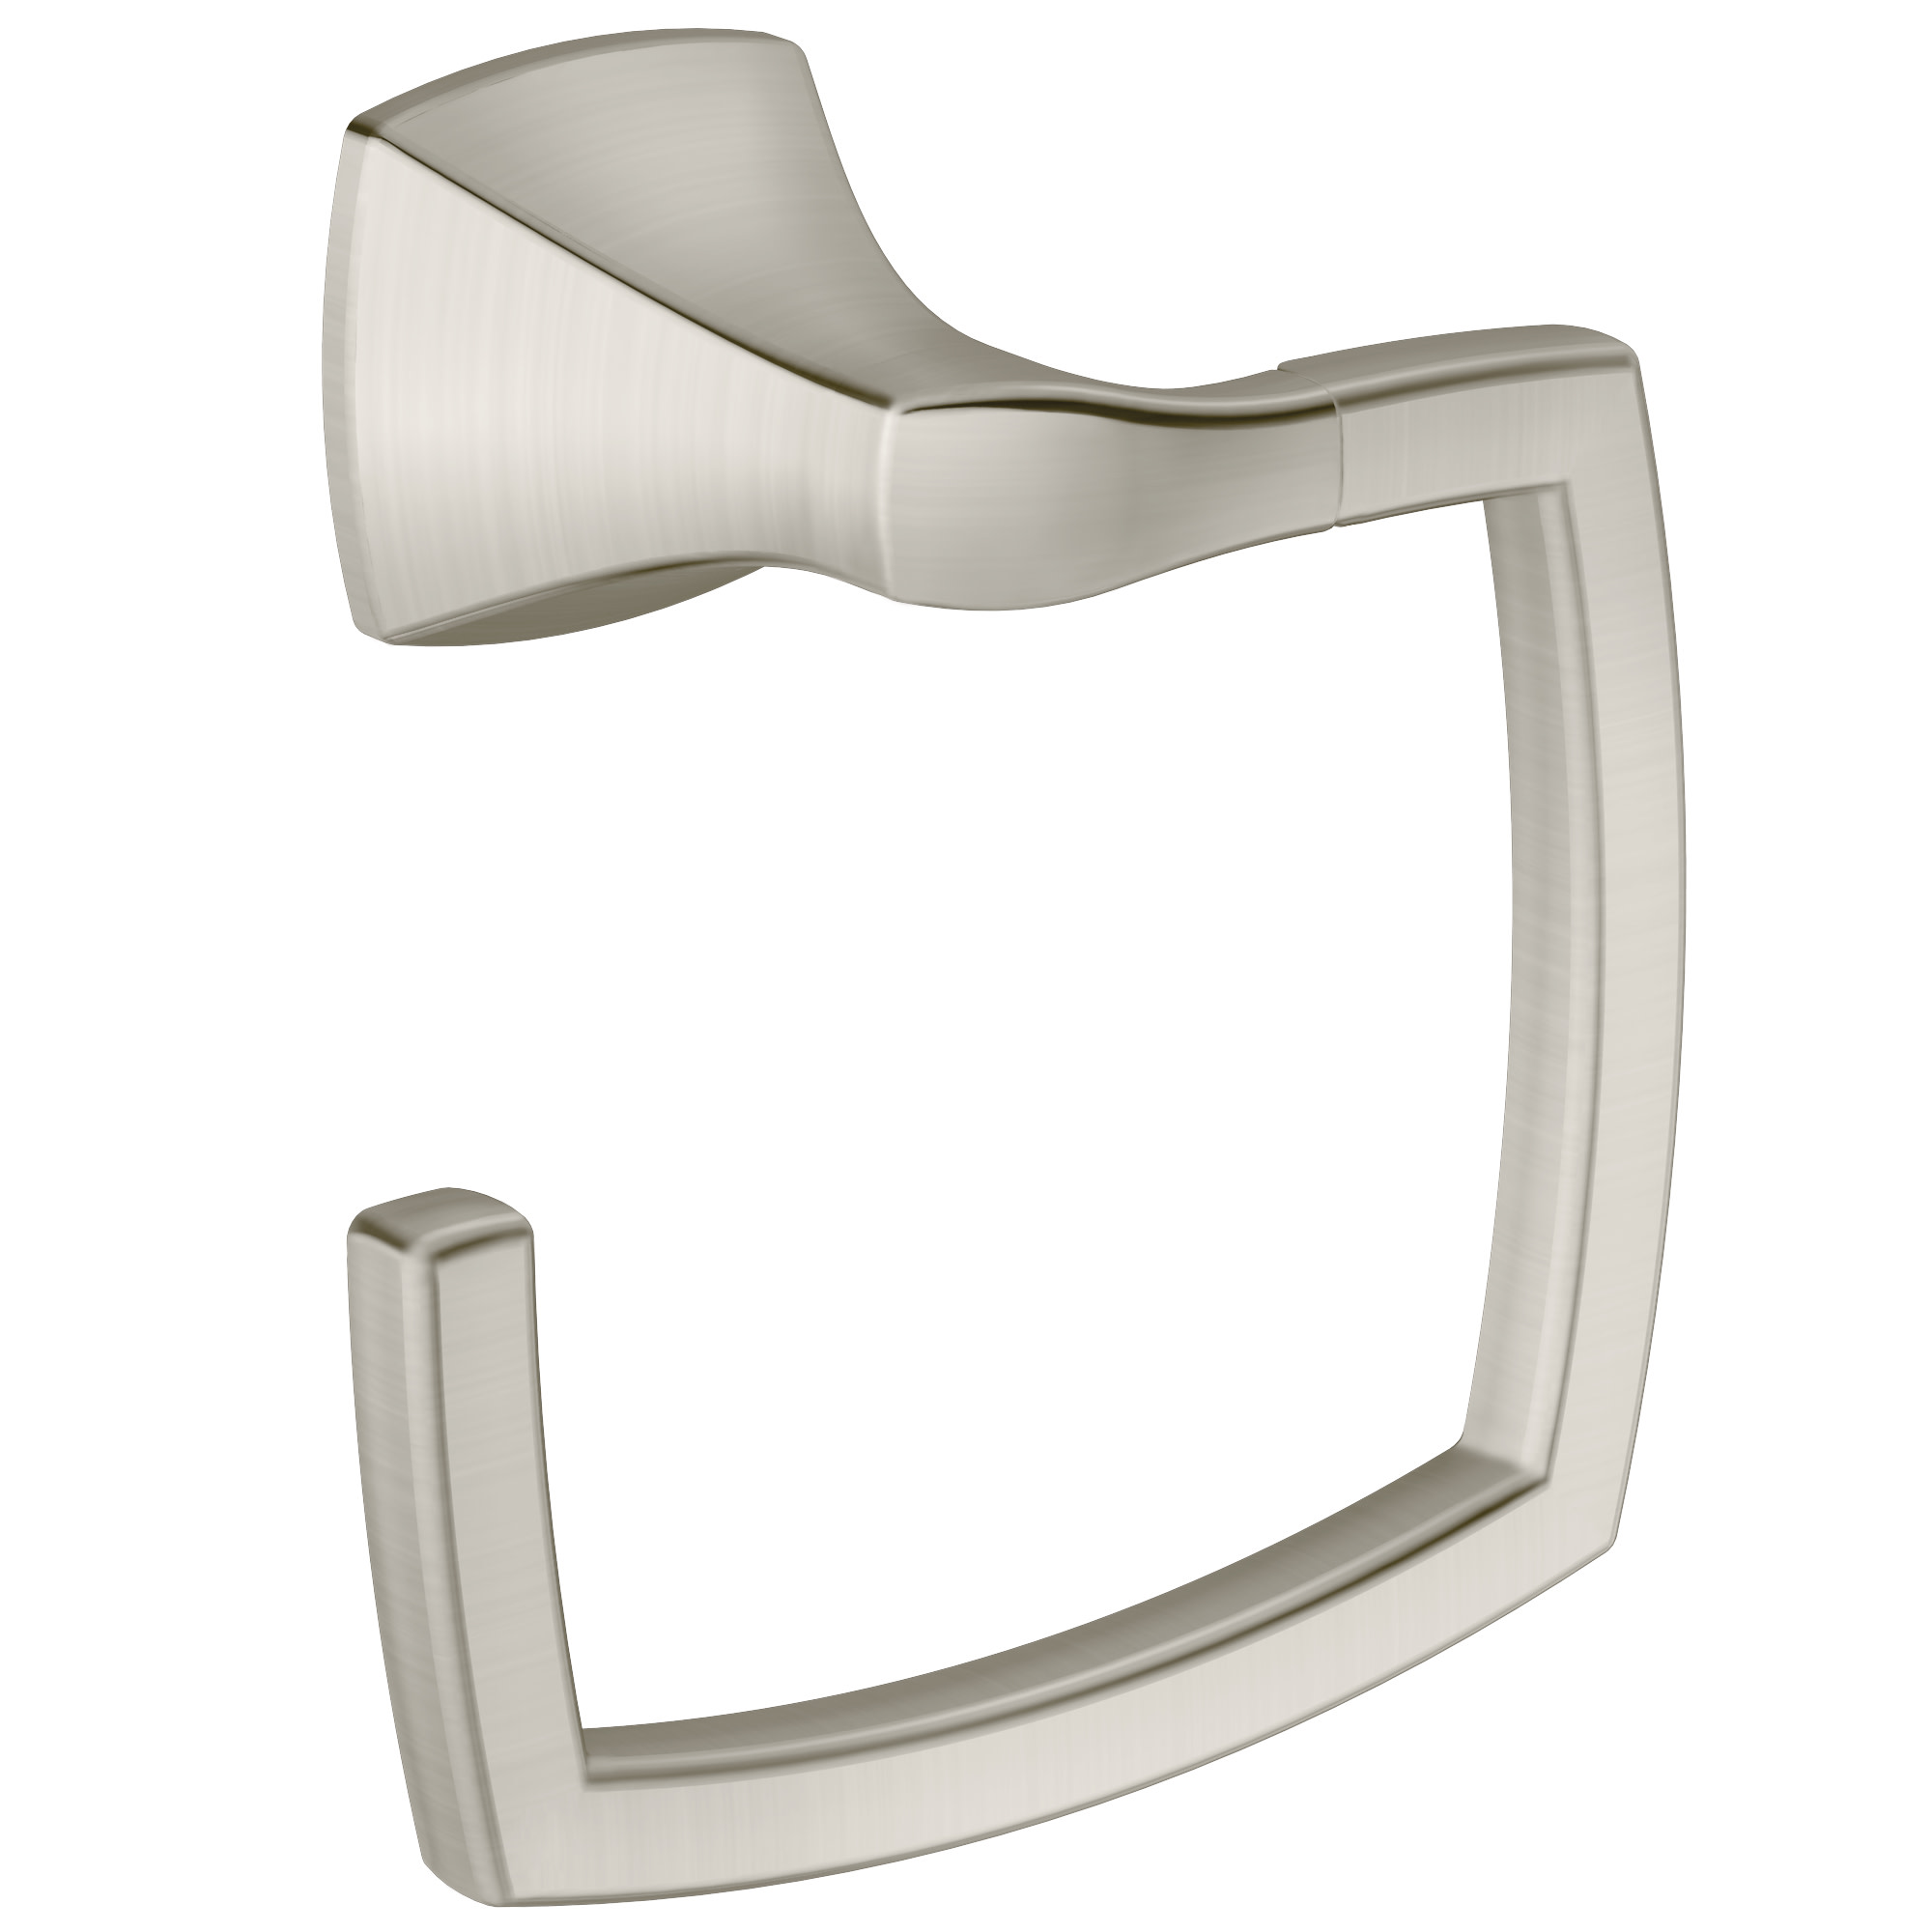 Voss Brushed nickel towel ring MOEN-YB5186BN